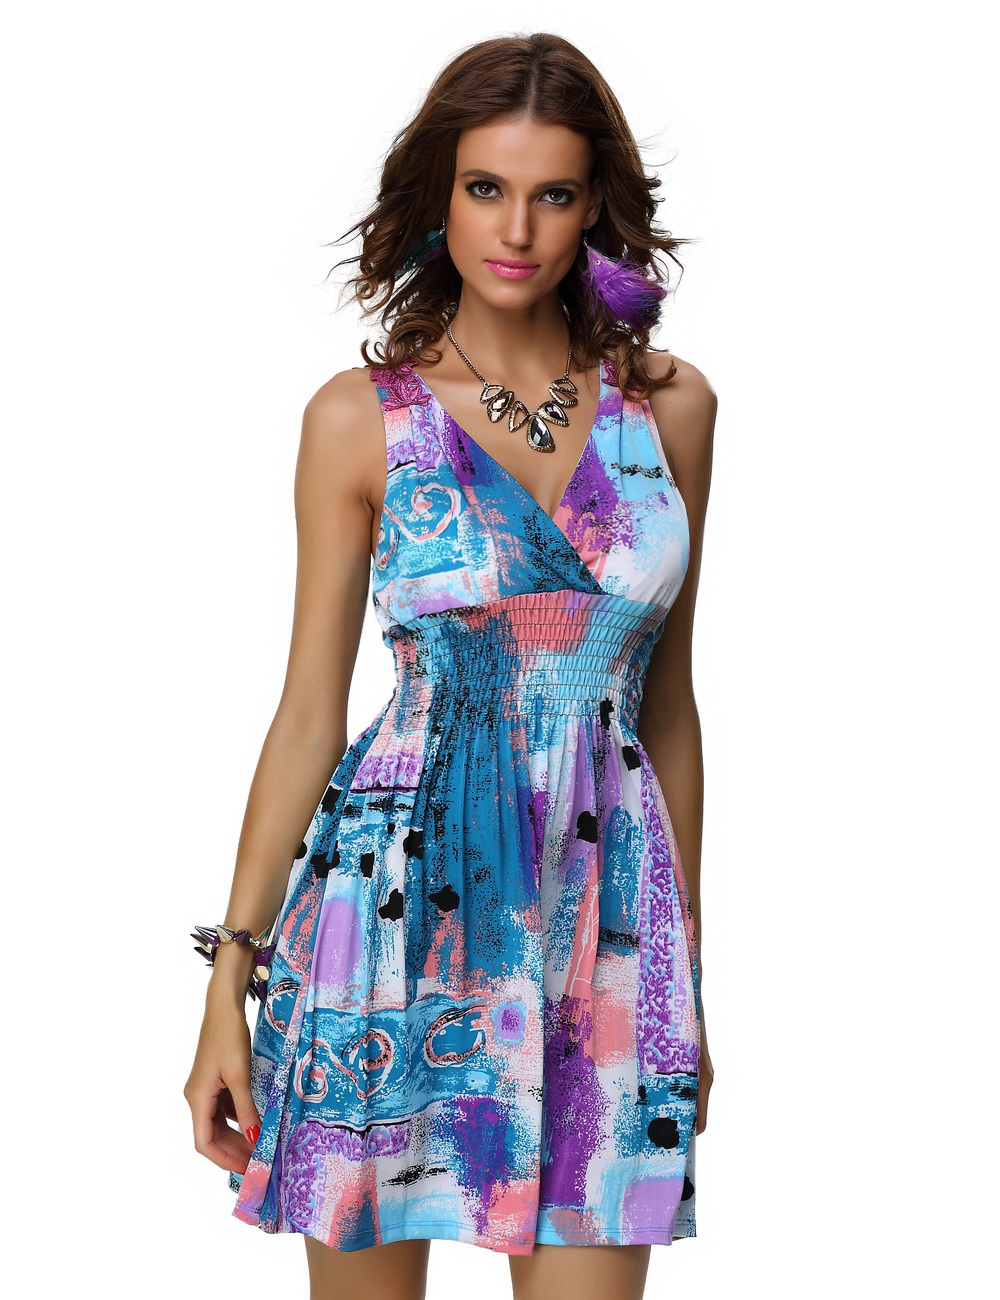 New Arrive Beach Dress Sexy Colorful Printed Design Fashion Lady Summer Dress(China (Mainland))